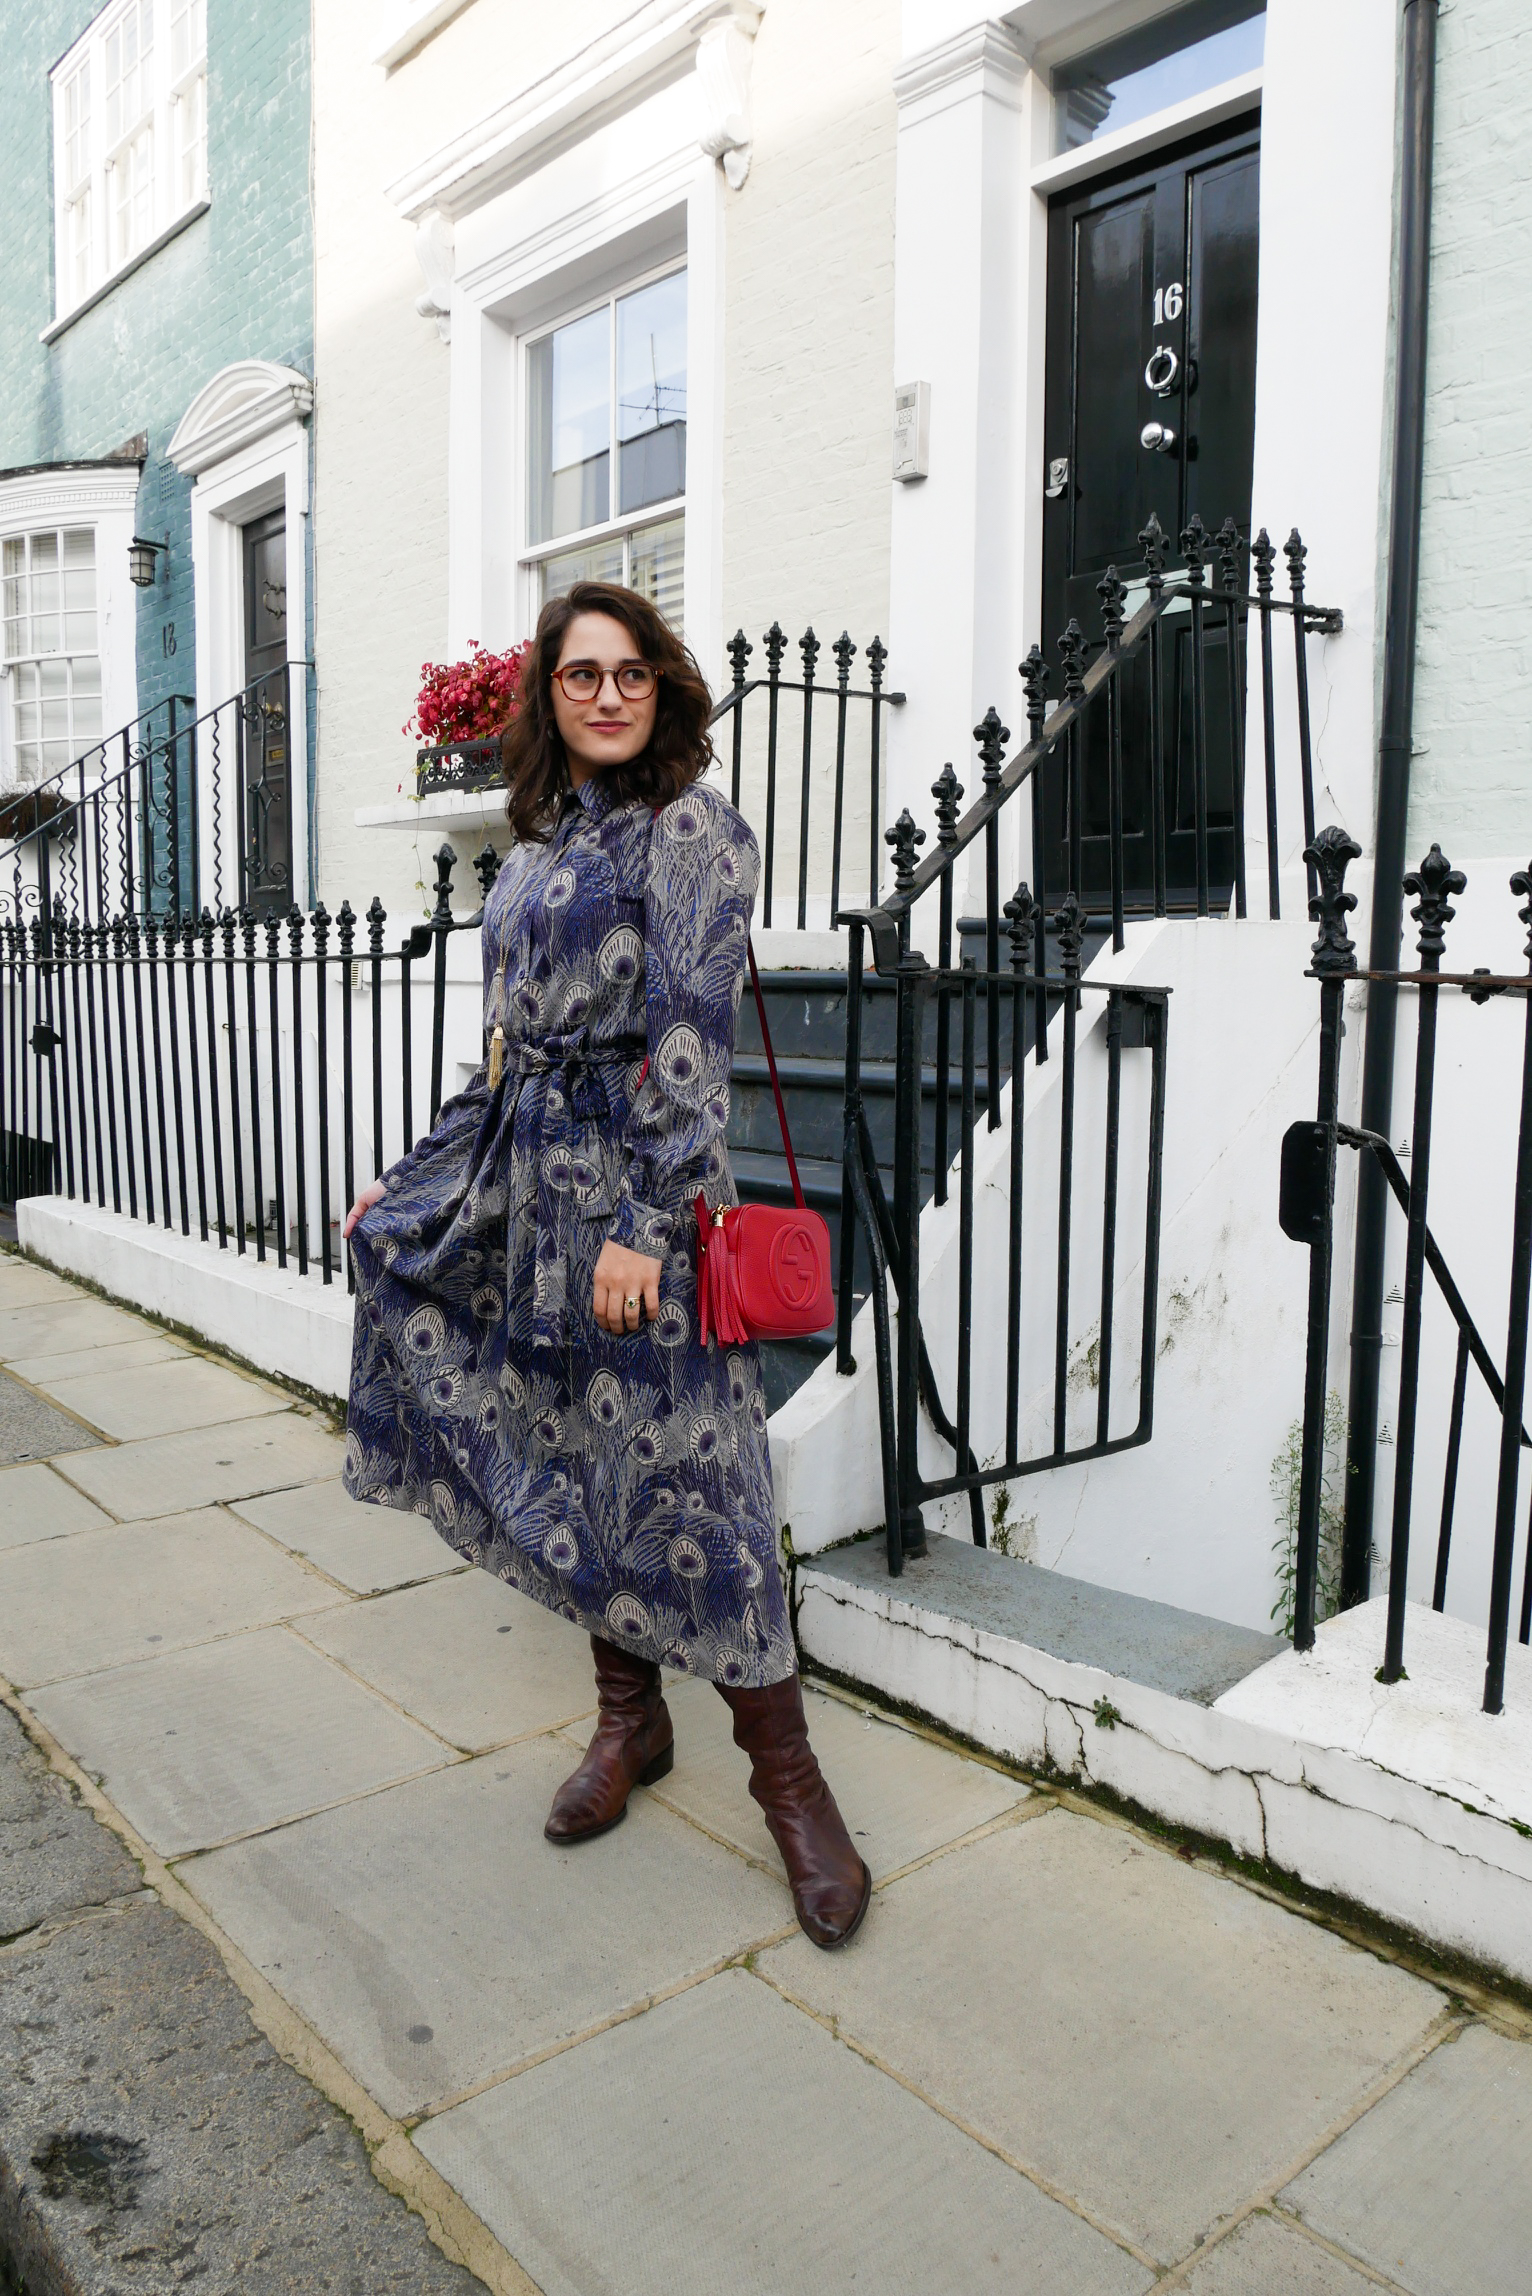 Katie wears a purple and blue peacock print midi length shirt dress with calf high brown boots, a red shoulder bag and gold tone tassel necklace on one of Notting Hill's rainbow house-front streets.